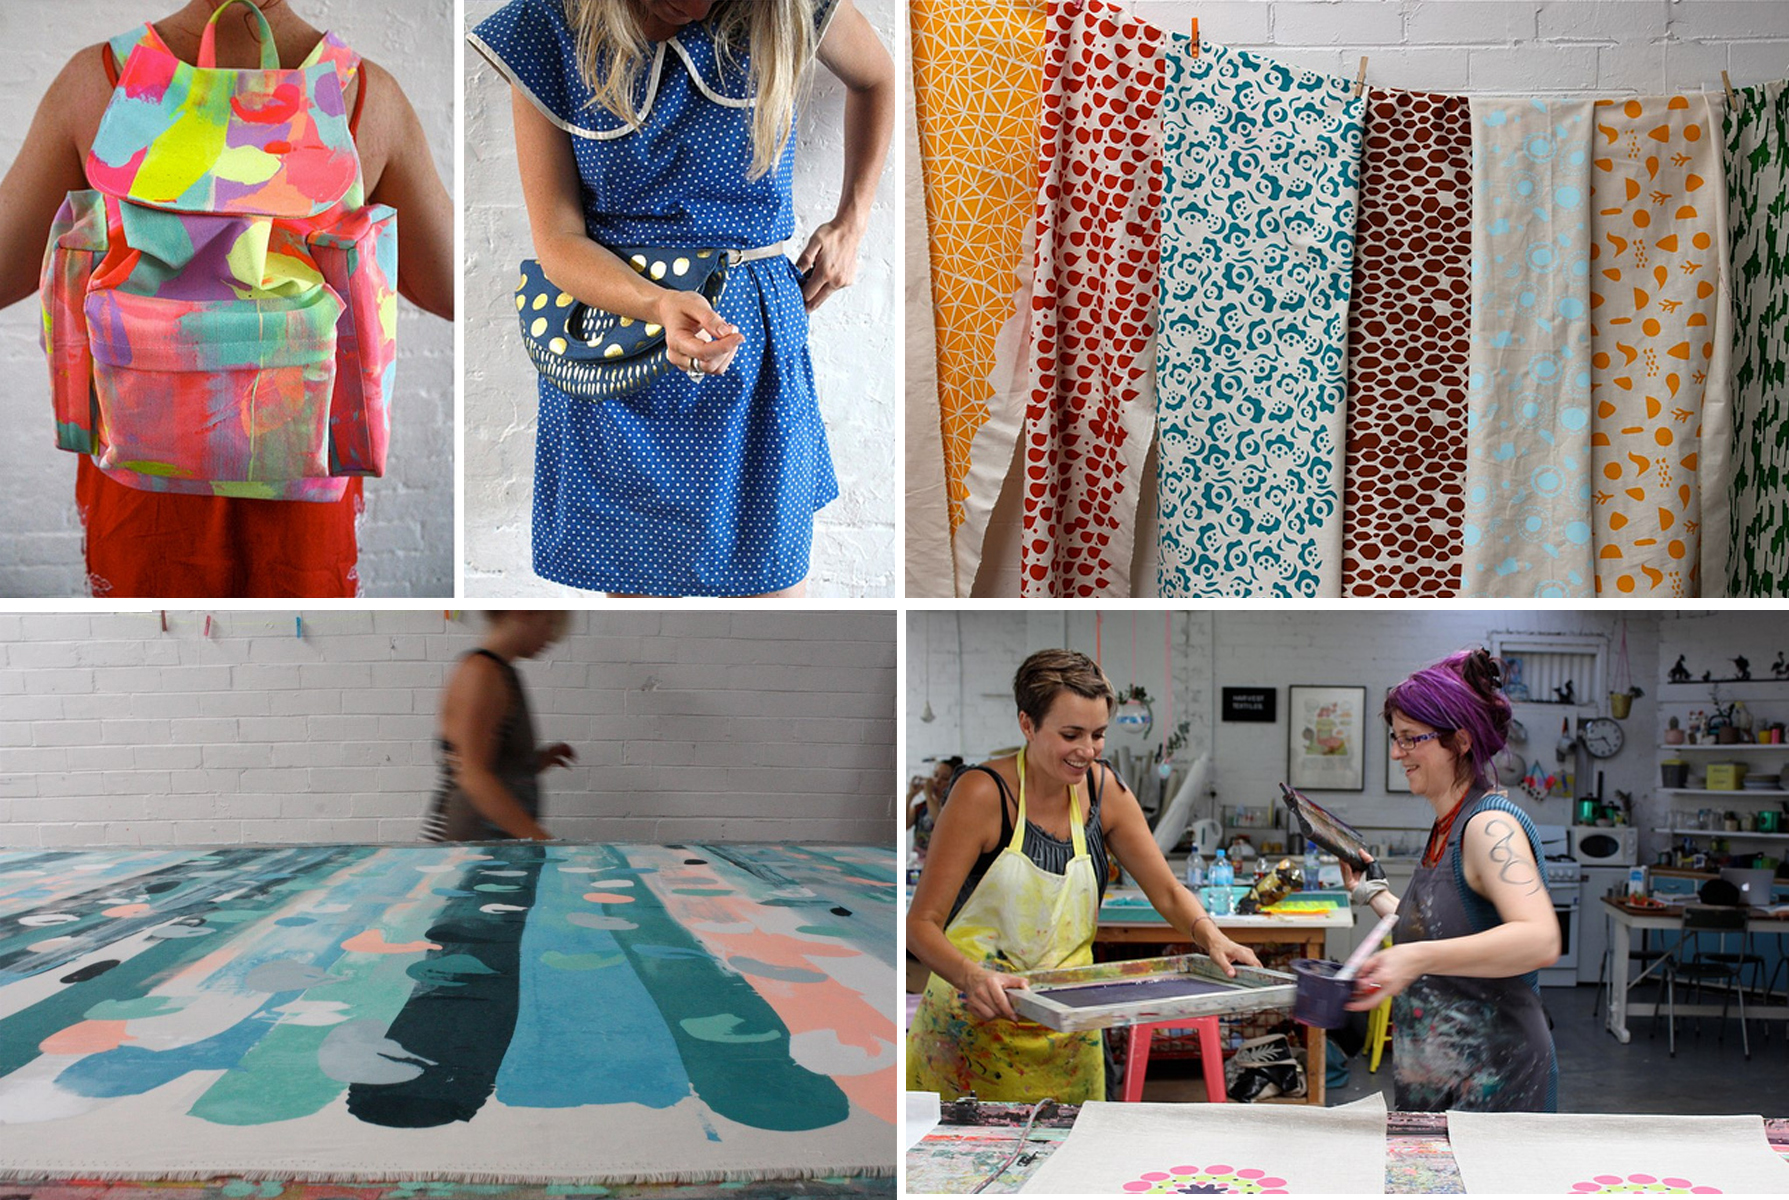 Products, projects and process at Harvest Textiles.